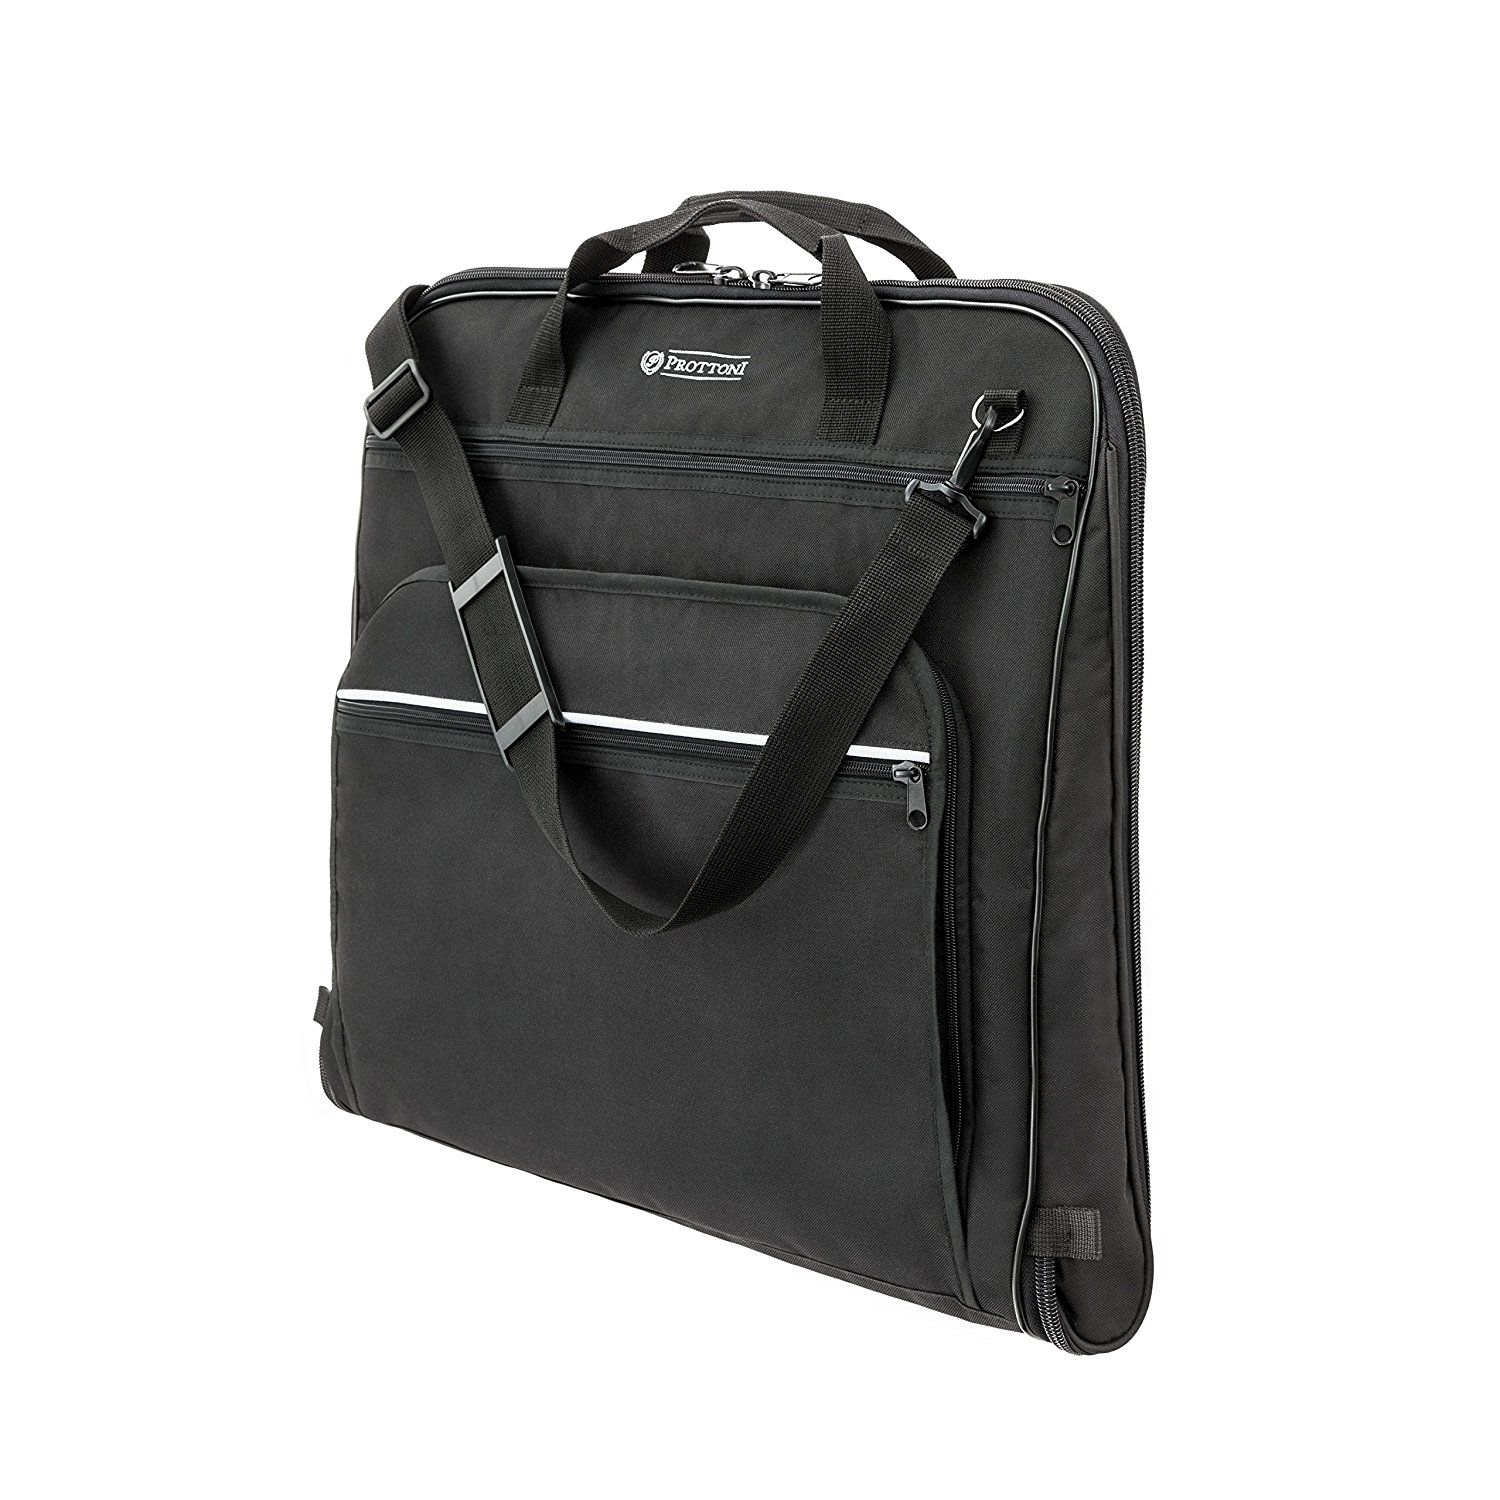 Prottoni 44' Premium Garment Bag - Built-in Hook - Shoulder Strap - Suit Bag with YKK ** Check out this great product.